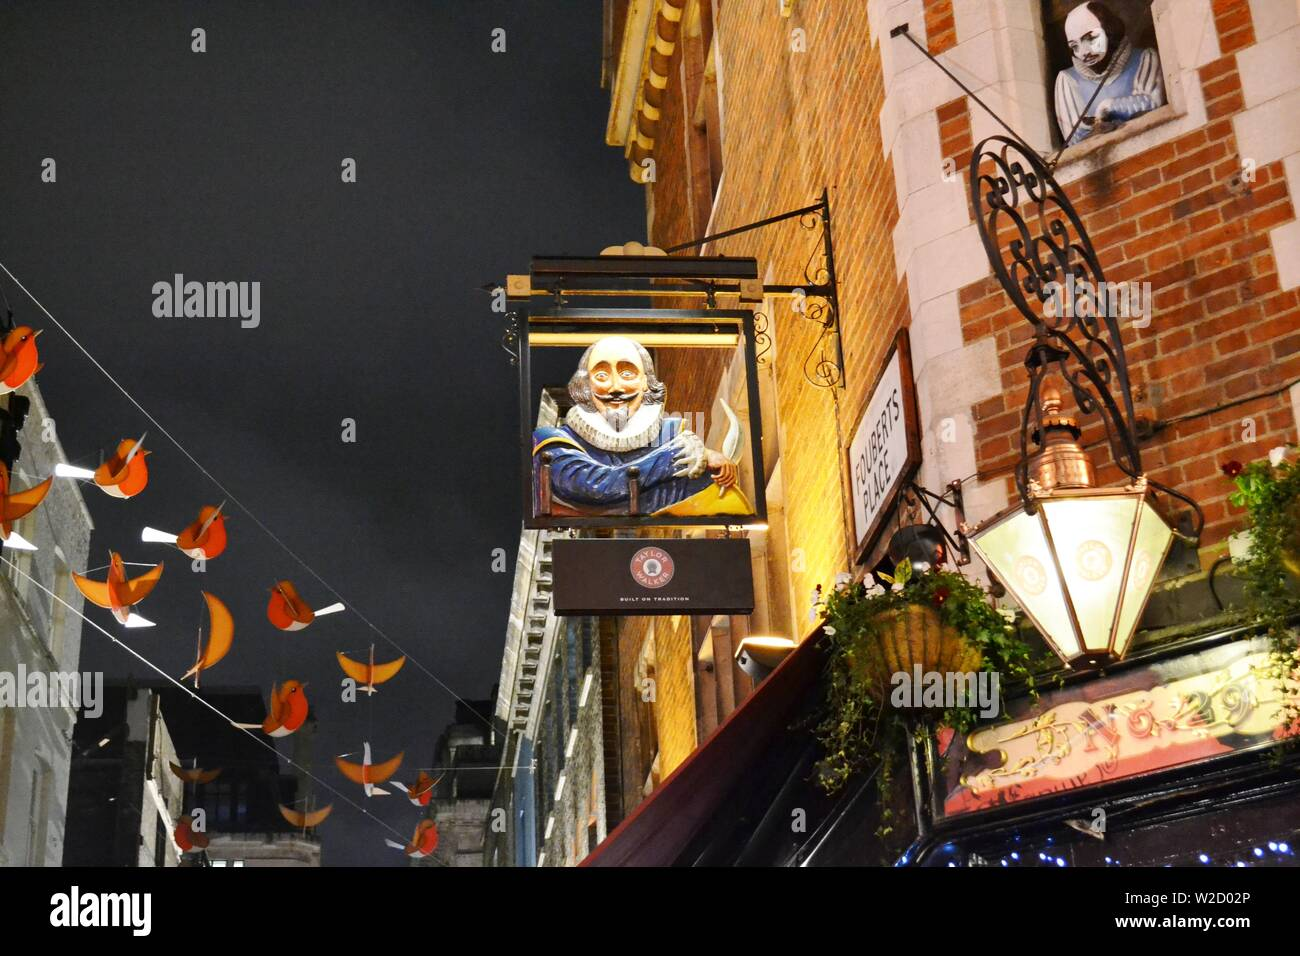 London/UK - November 28, 2013: Close-up view Shakespeare's head pub in the Carnaby street decorated for Christmas with red birds to feel happiness. Stock Photo